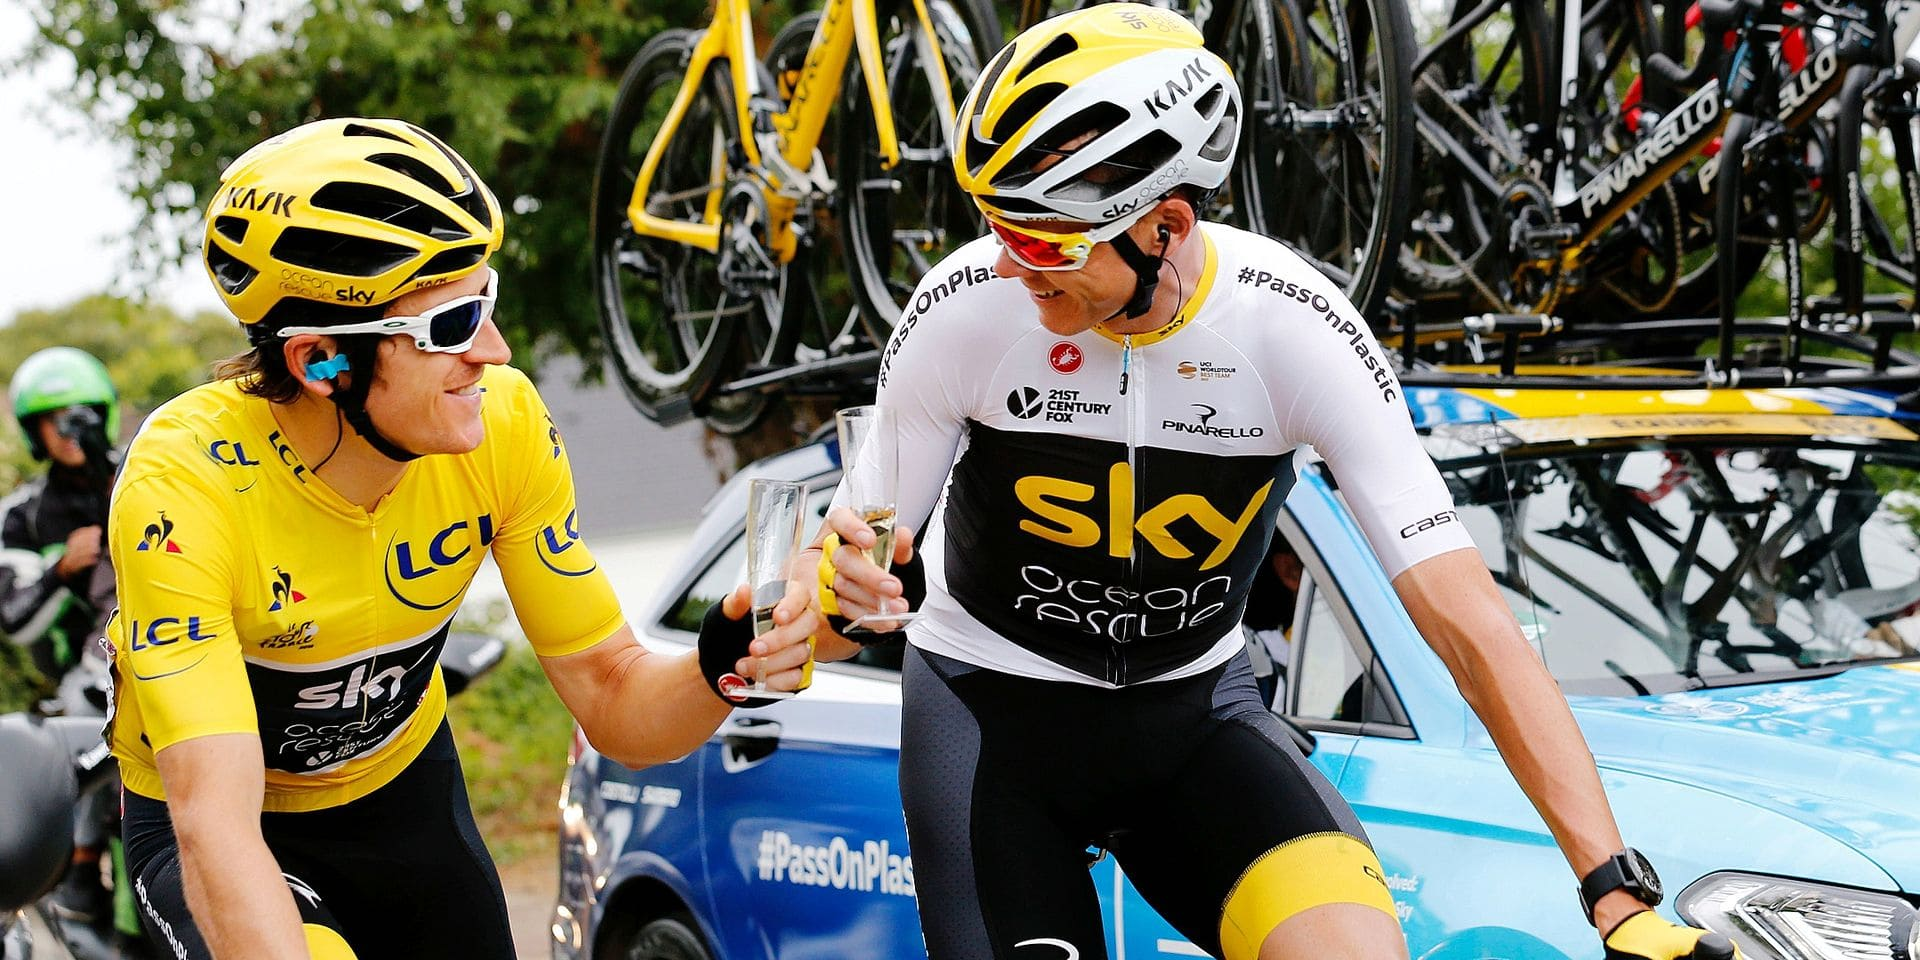 British Geraint Thomas of Team Sky and British Chris Froome of Team Sky pictured with champagne during the last stage of the 105th edition of the Tour de France cycling race, 116km from Houilles to Paris, France, Sunday 29 July 2018. This year's Tour de France takes place from July 7th to July 29th. BELGA PHOTO YUZURU SUNADA